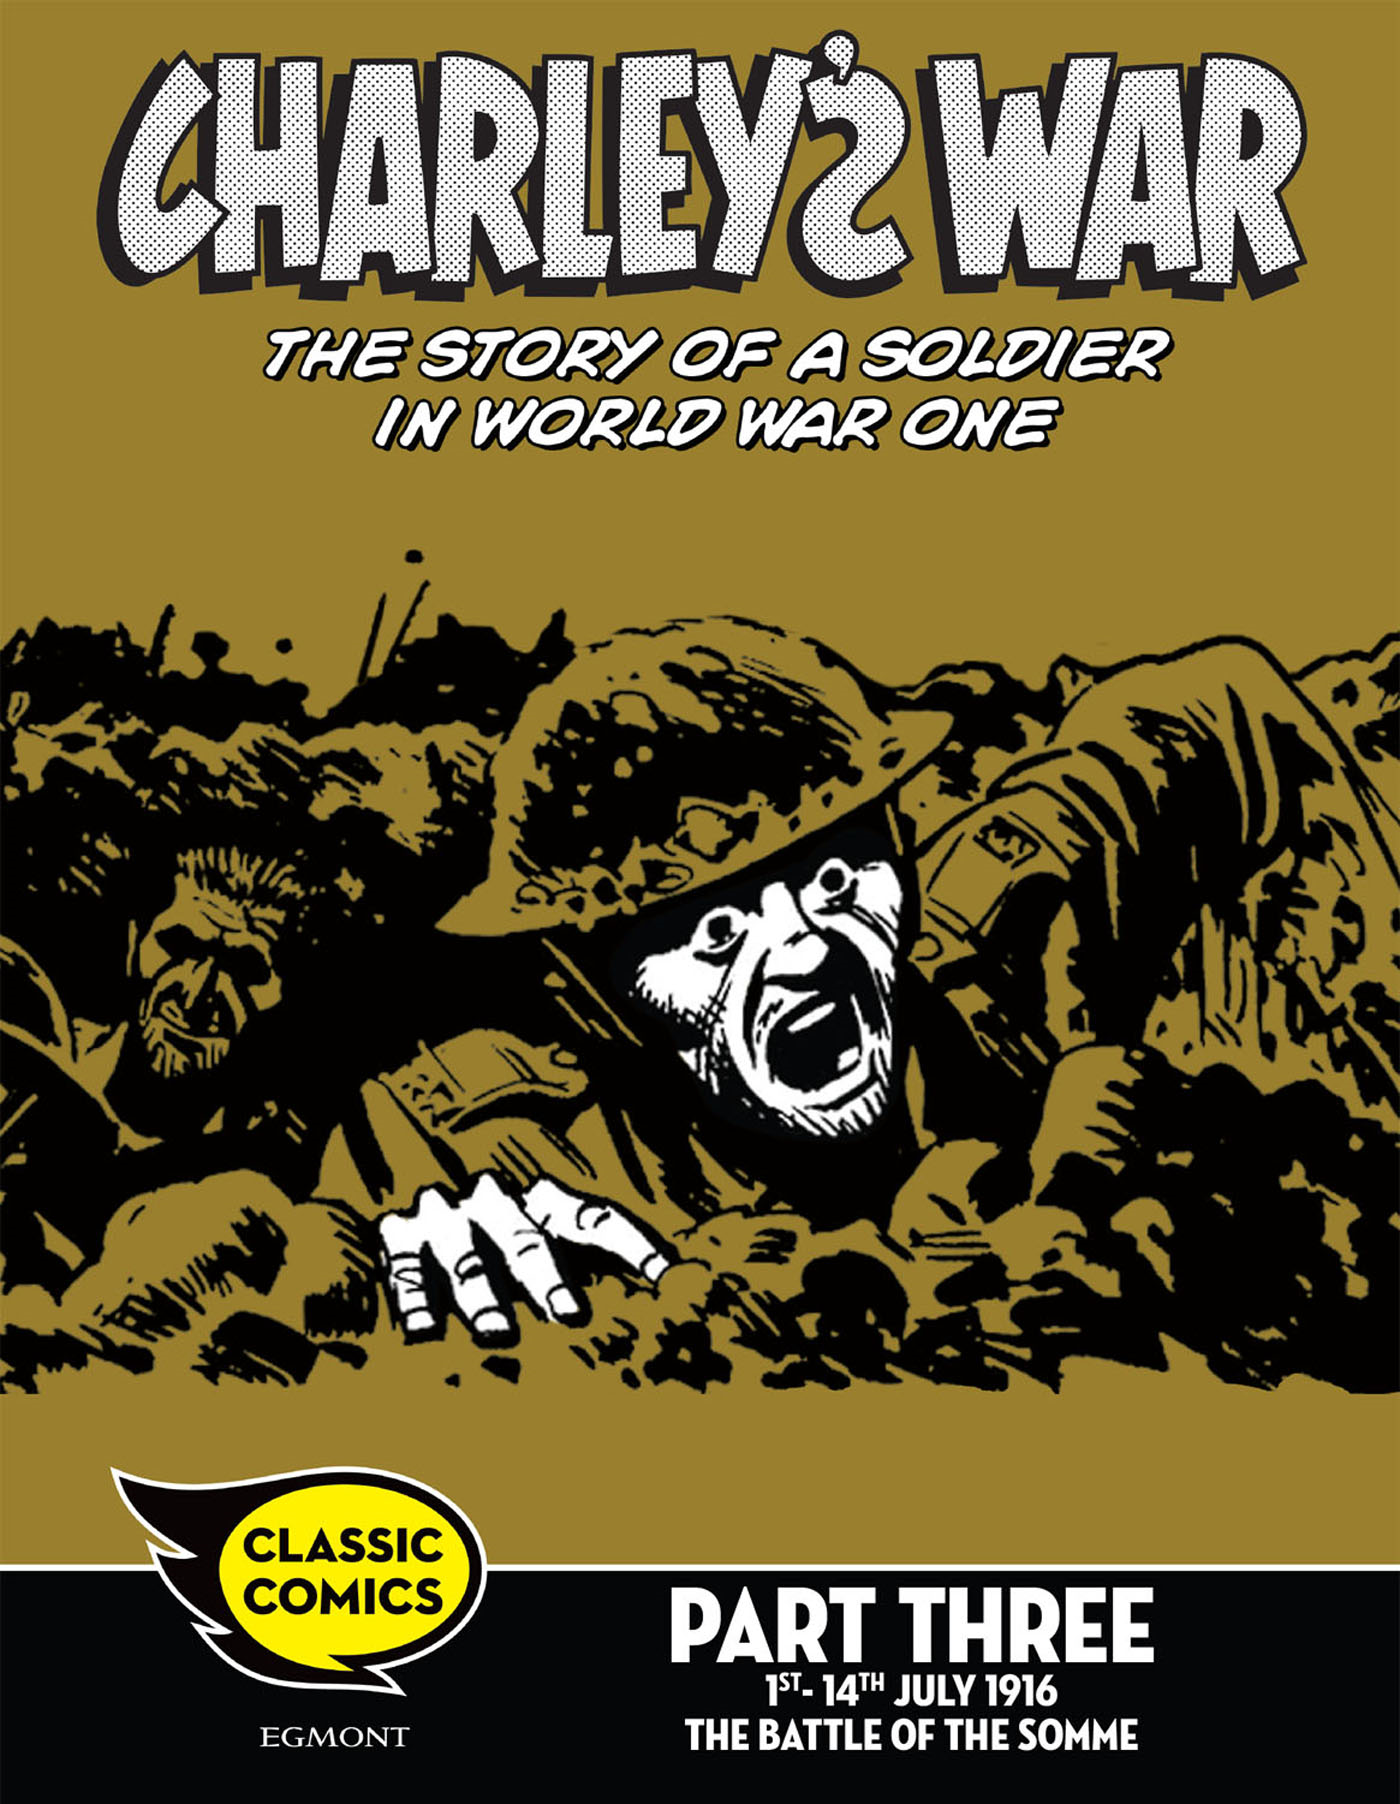 Charley's War Comic Part Three: 1st-14th July 1916 The Battle of the Somme